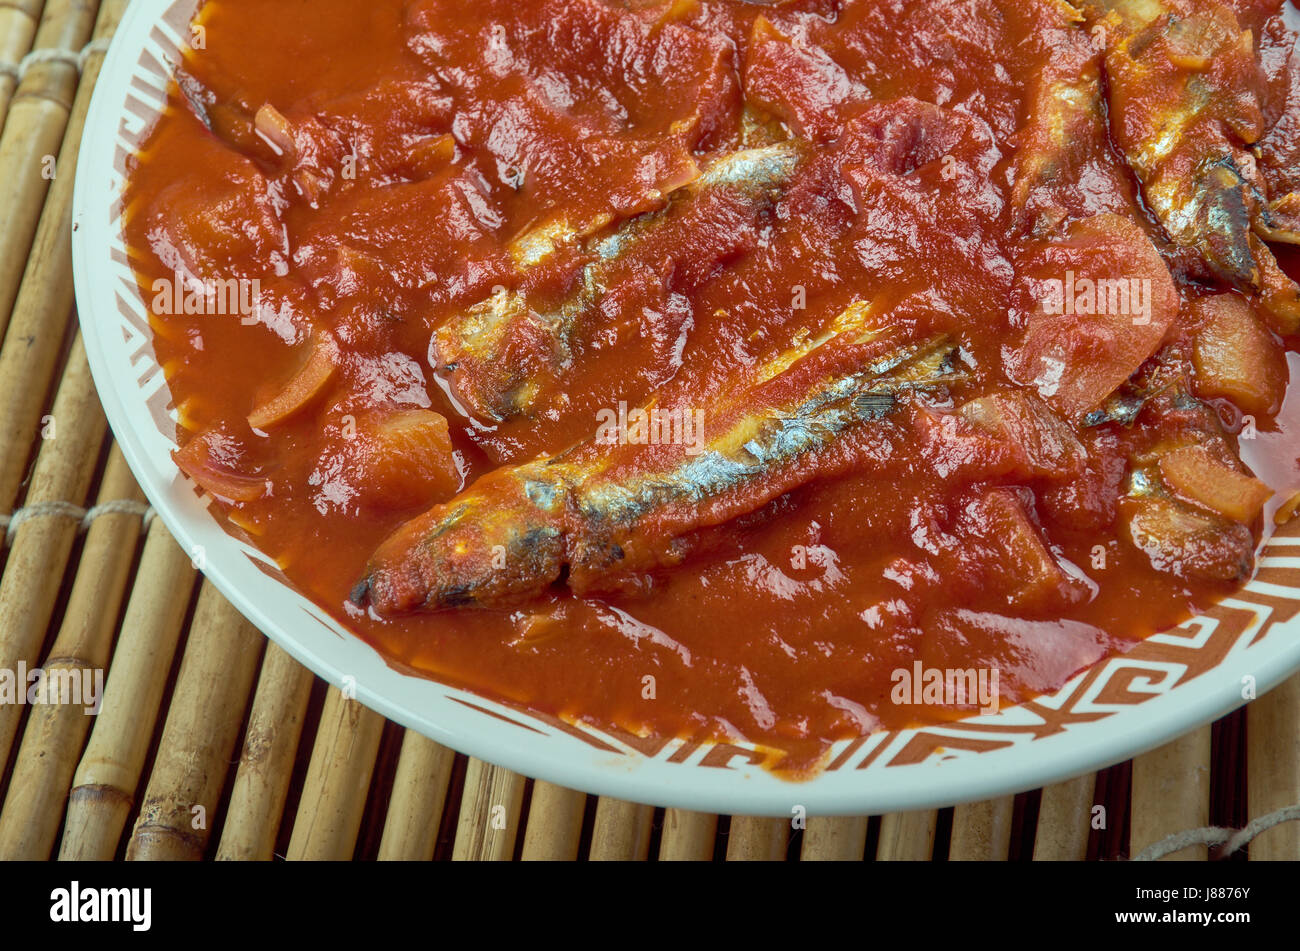 Nethili meen kulambu traditional fish curry recipe from tamil nethili meen kulambu traditional fish curry recipe from tamil naduchovy fish currytraditional south indian cuisine forumfinder Image collections